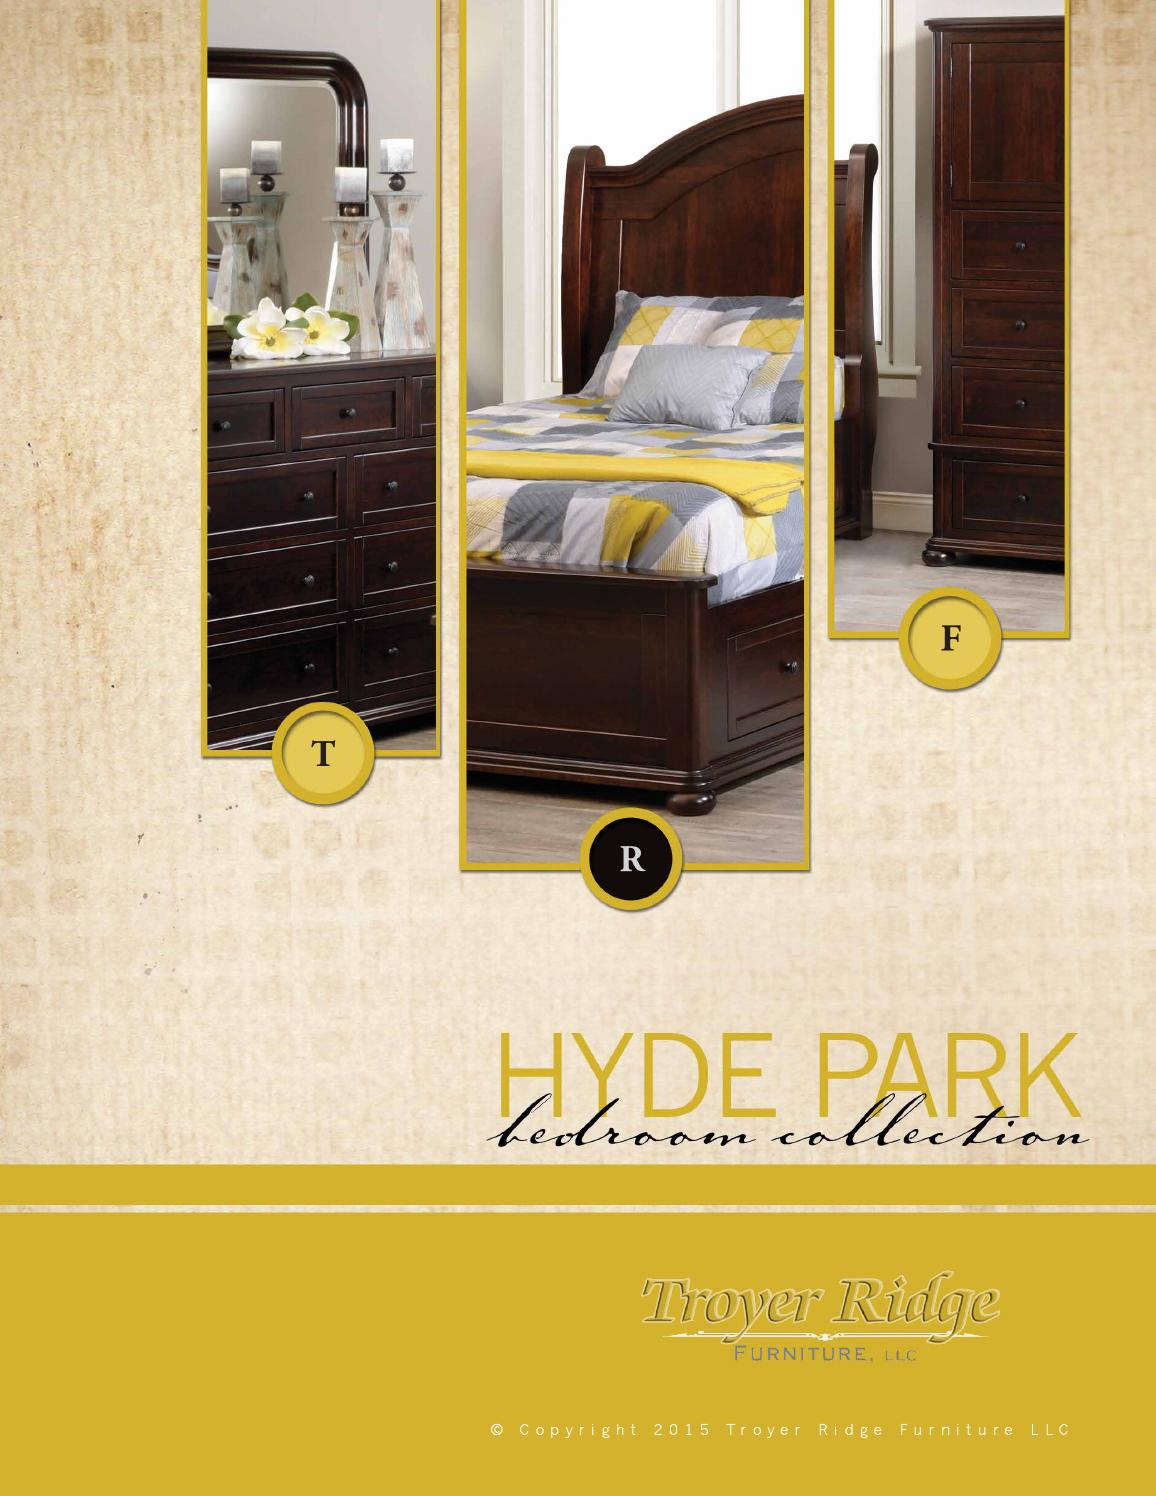 Troyer Ridge Furniture Hyde Park Collection By Online PDFs   Issuu